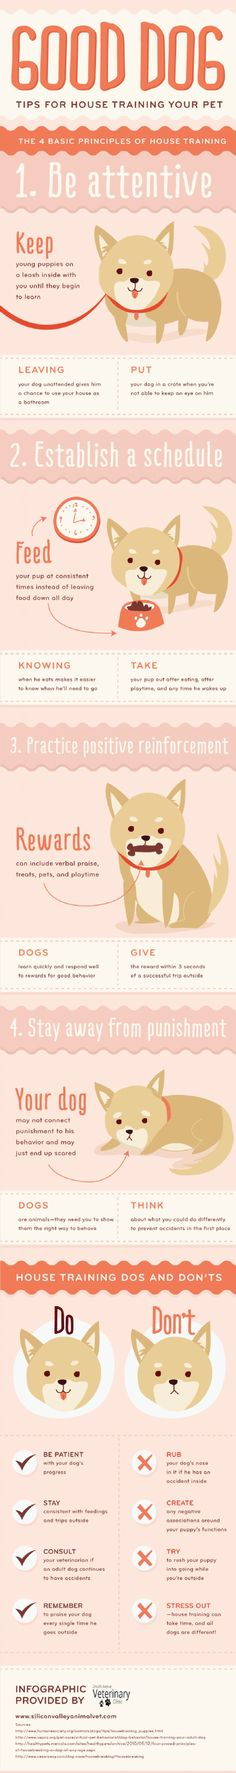 Good Dog: Tips for House Training Your Pet -shared by BrittSE on Mar 29, 2014